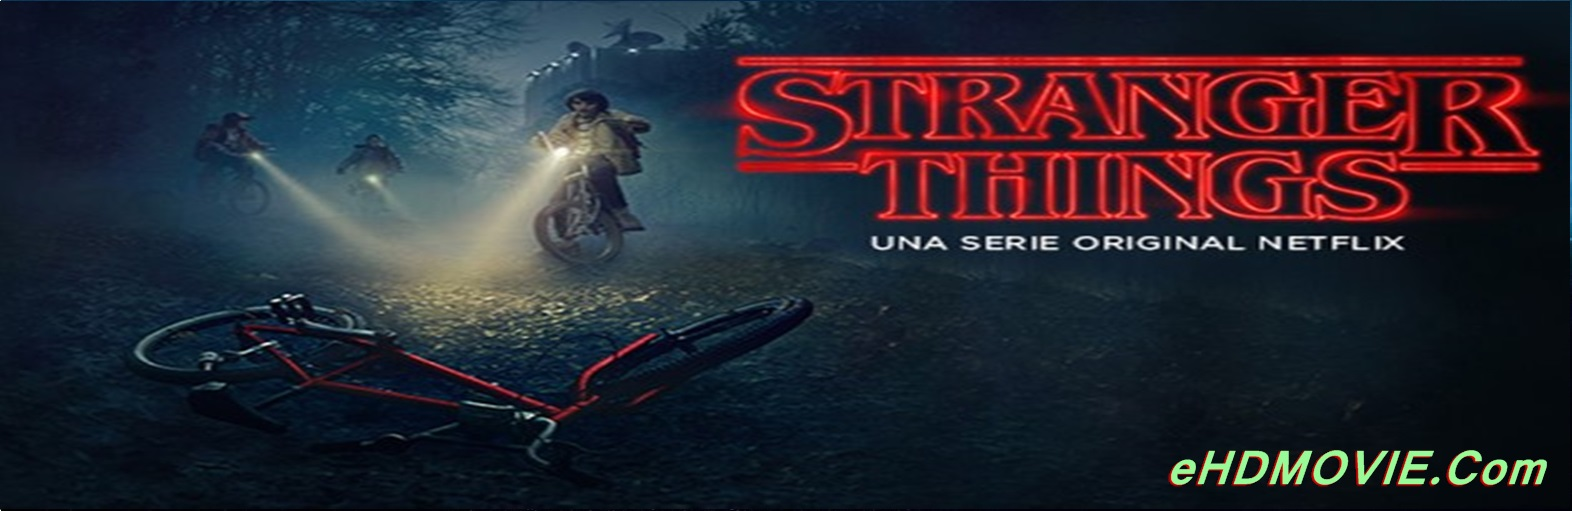 Stranger Things S01 Complete Dual Audio 720p BRRip [Hindi – English] ESubs